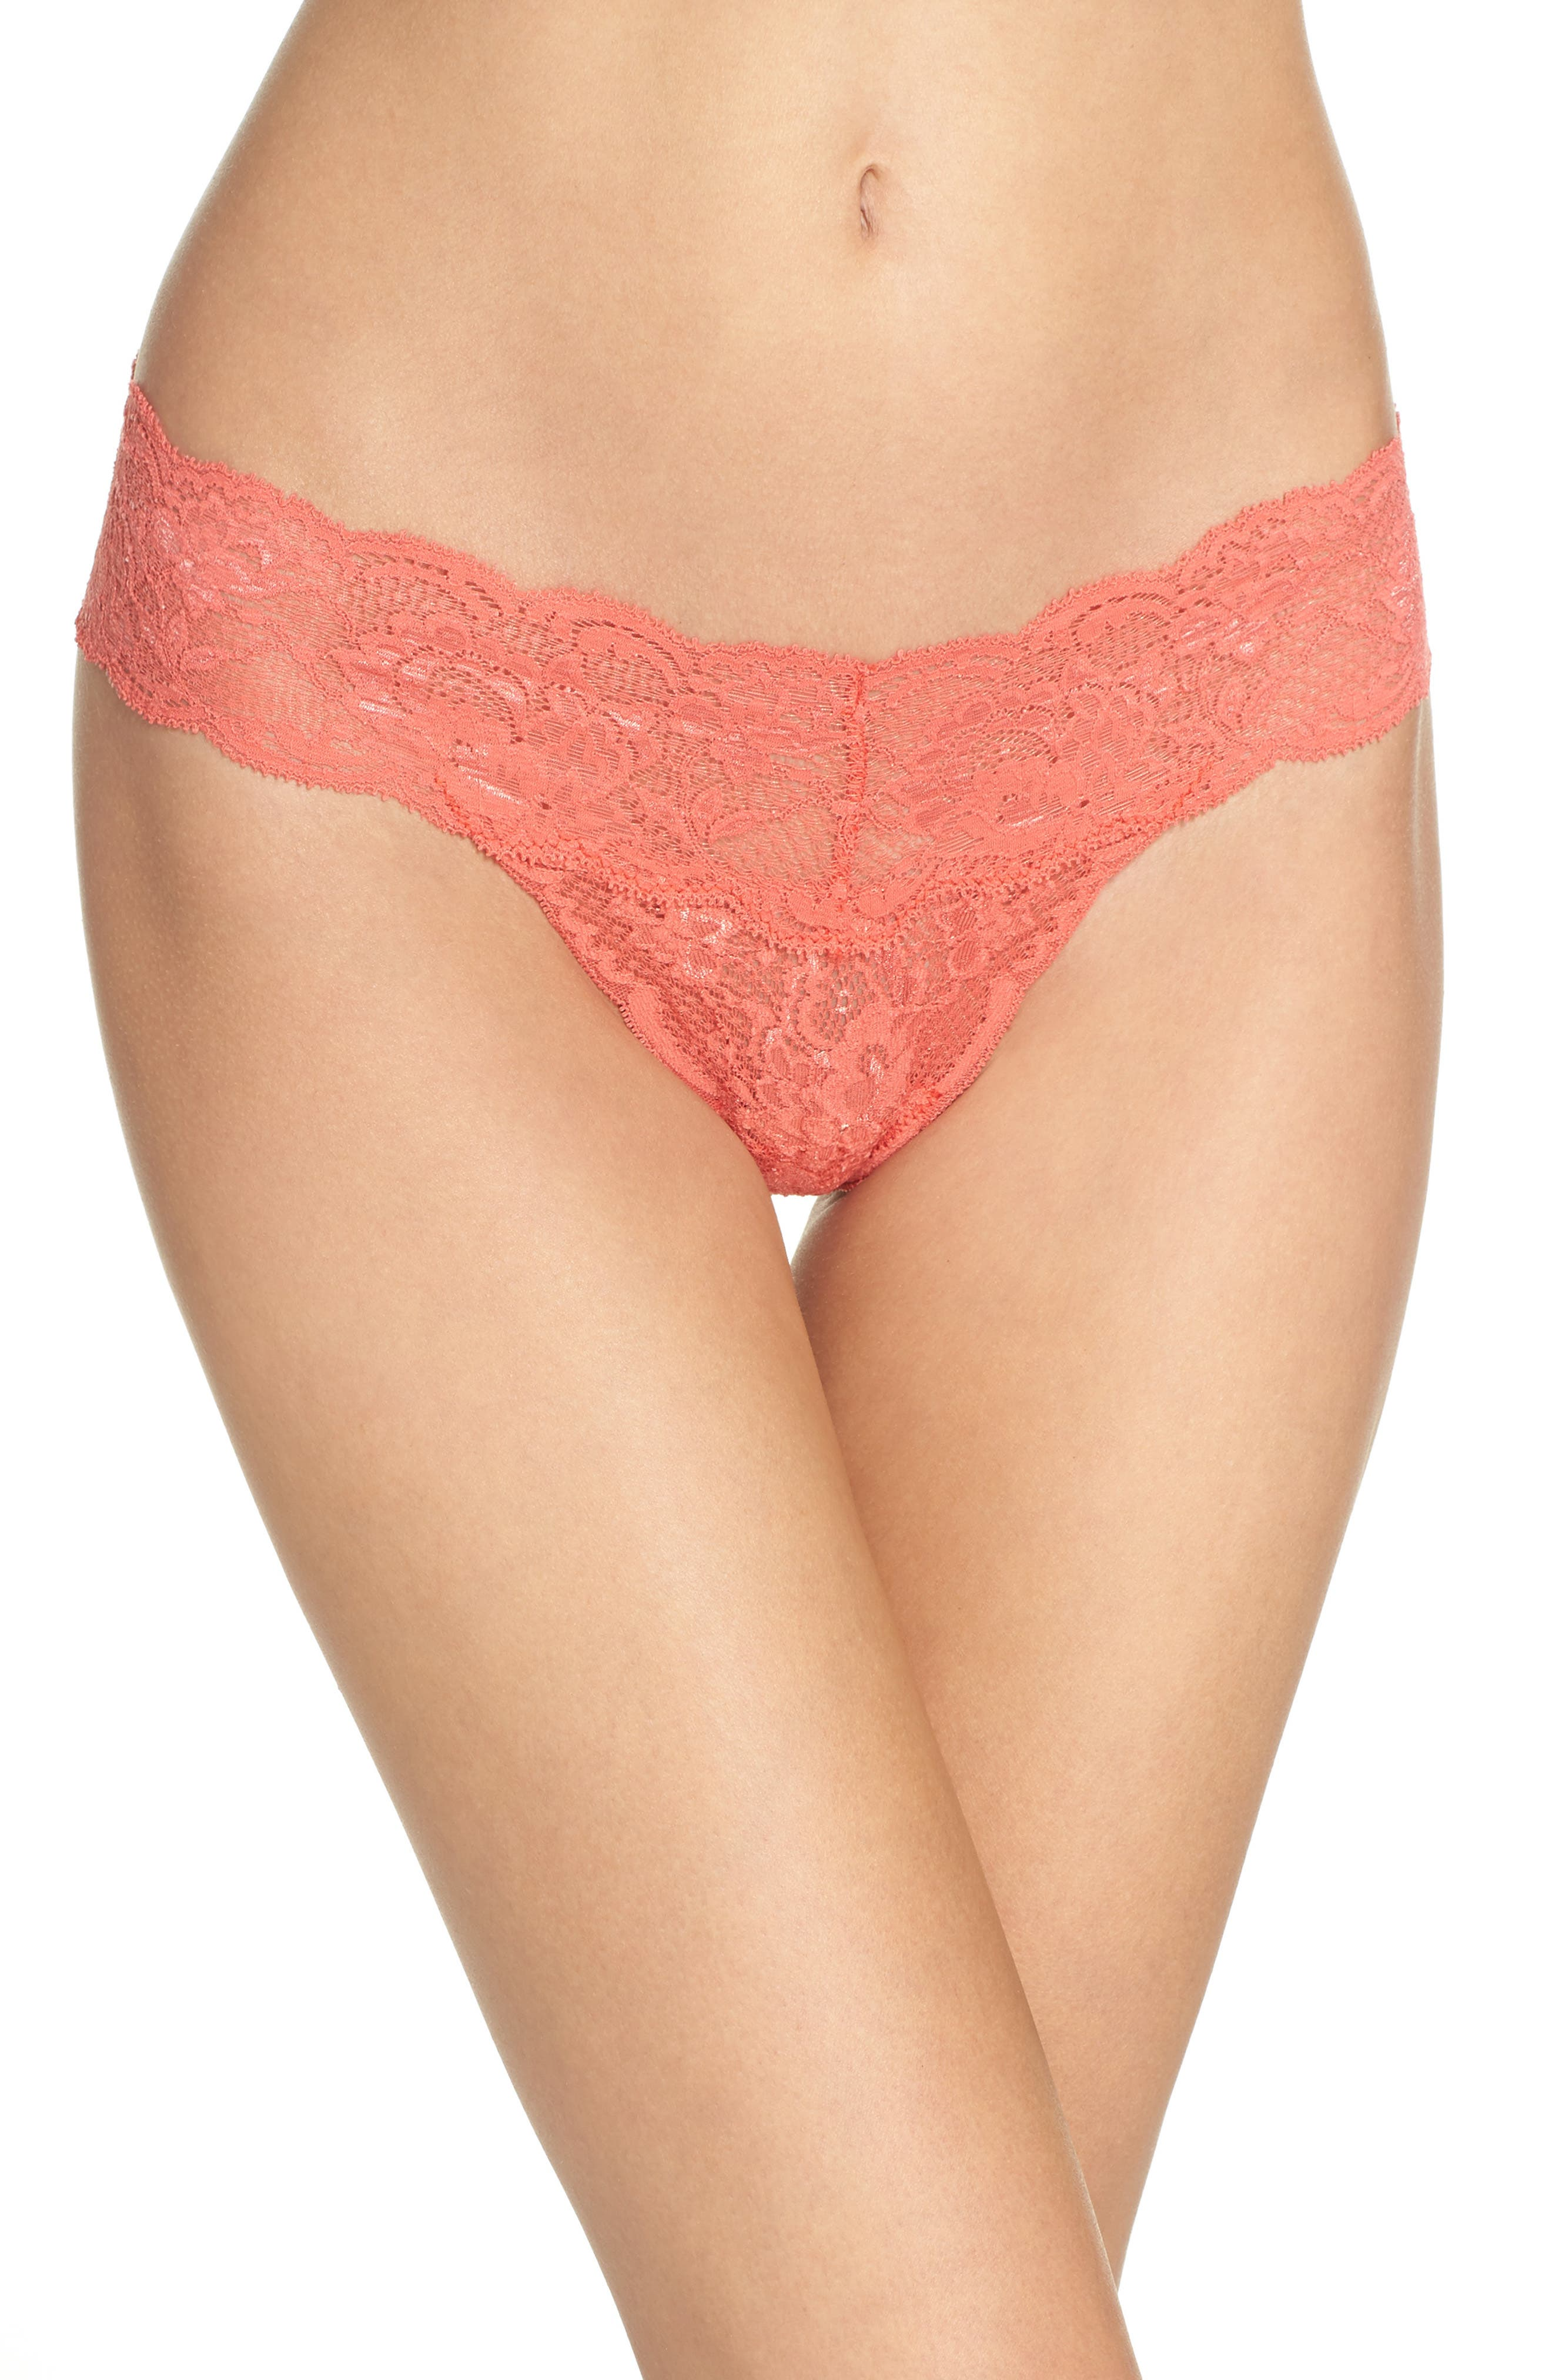 'Never Say Never Cutie' Thong,                             Alternate thumbnail 123, color,